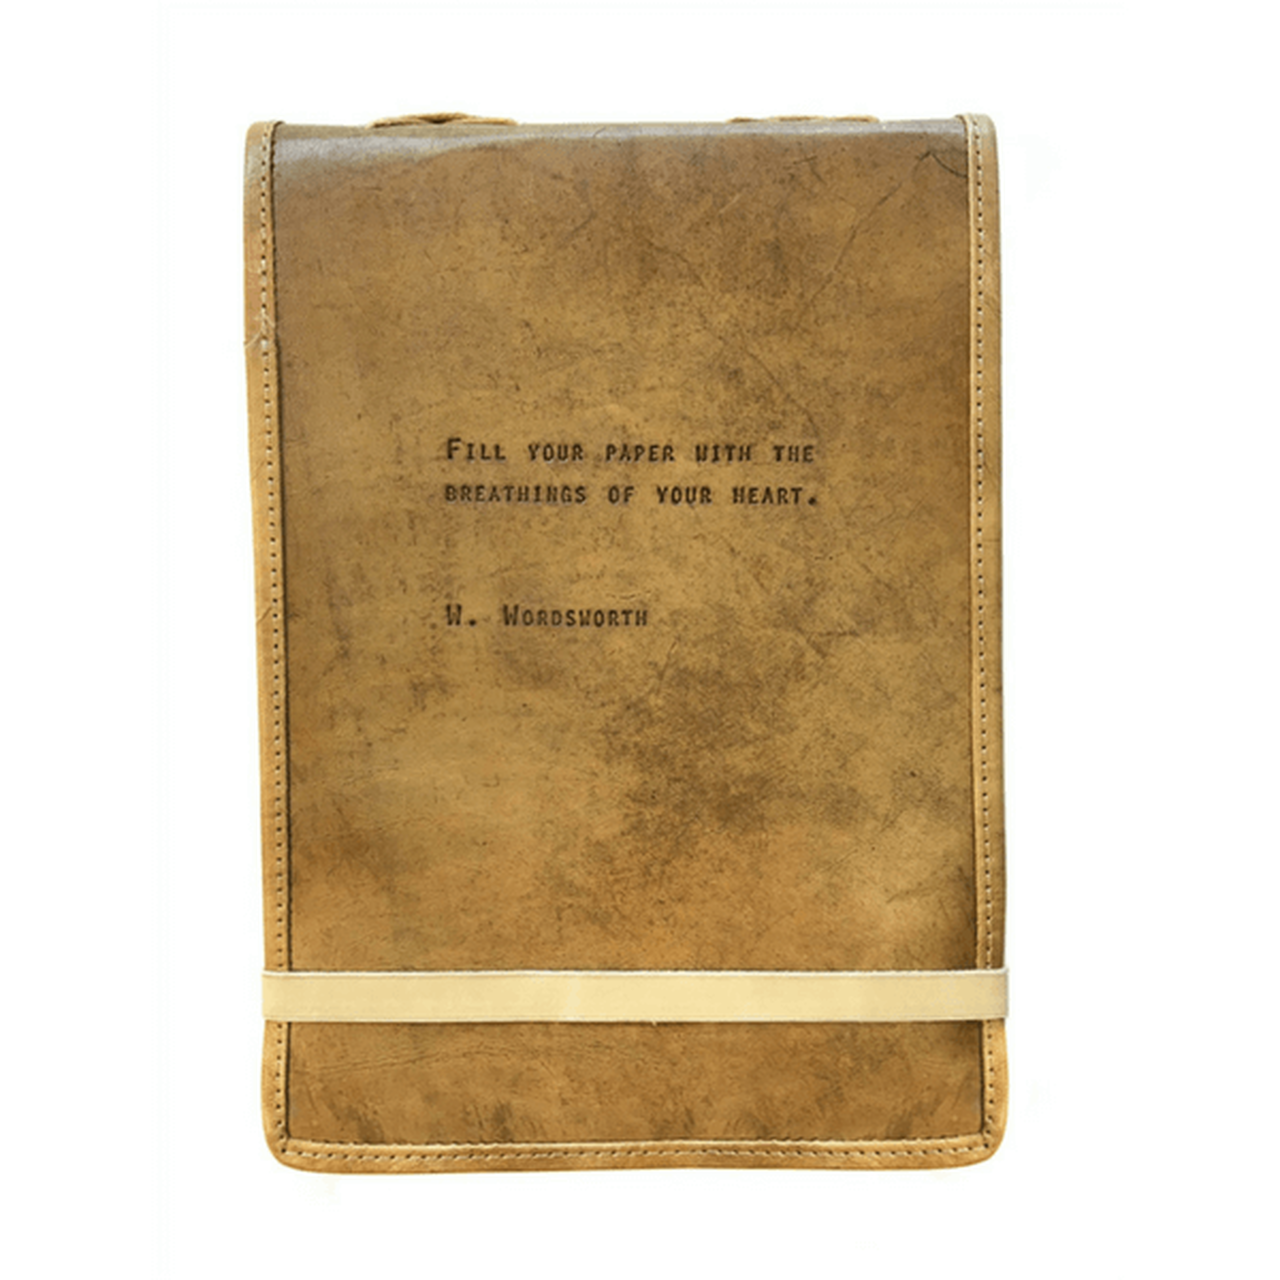 leather journal - fill your paper